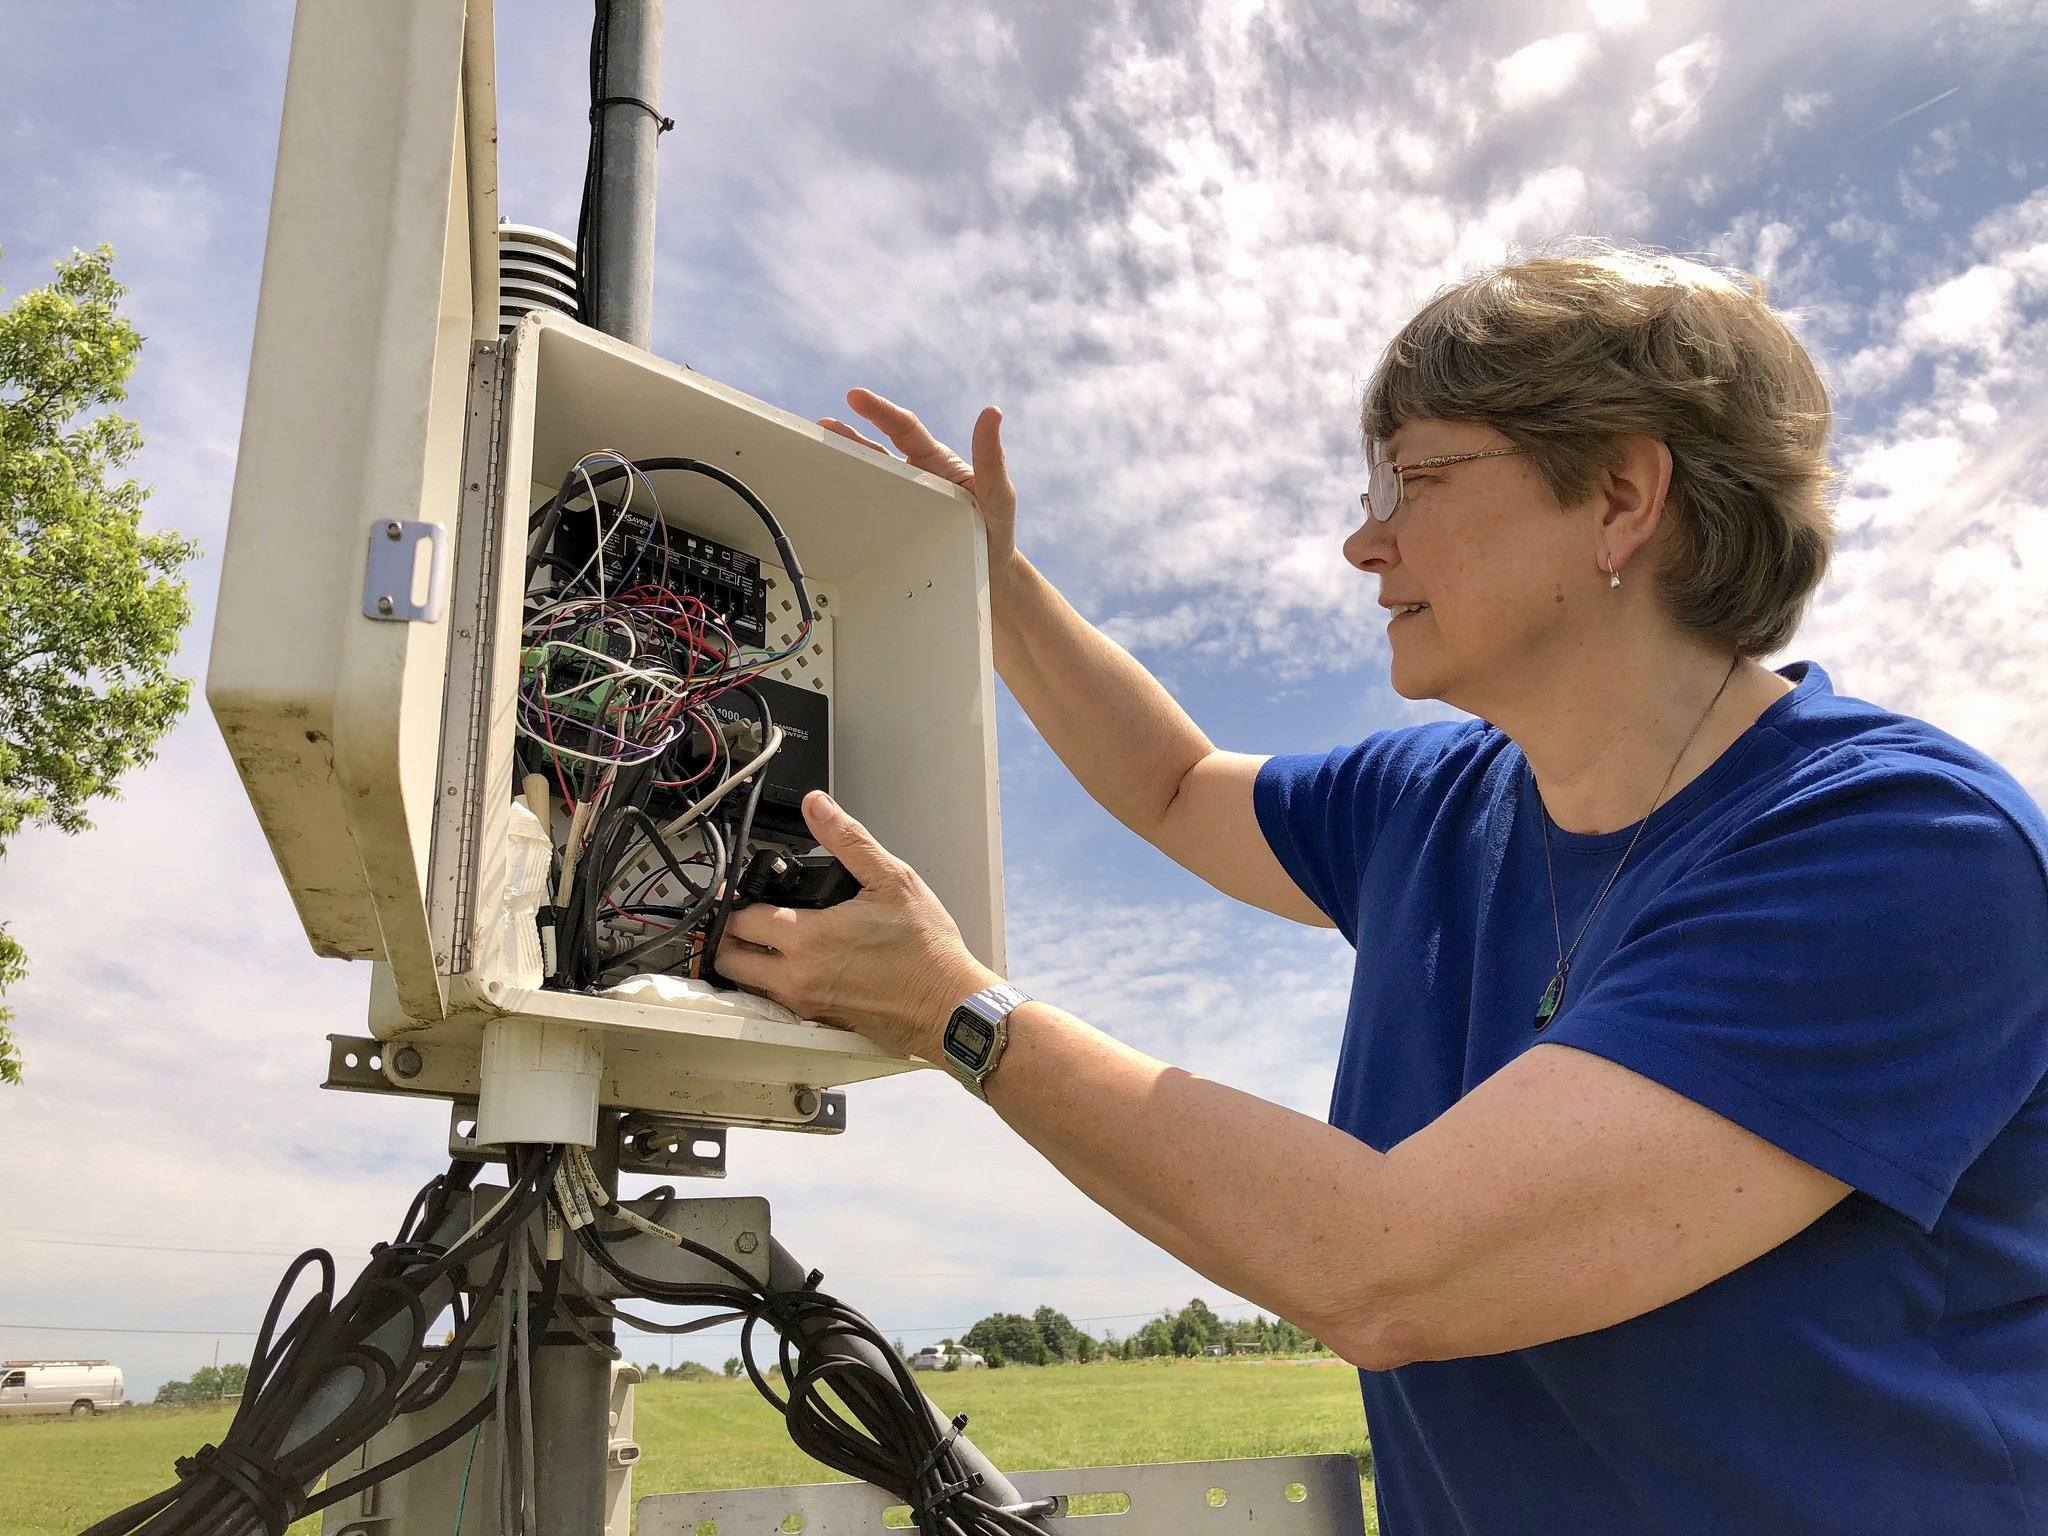 Pam Knox, newly named interim director of the University of Georgia Automated Environmental Monitoring Network, checks the data logger at the weather station on the Durham Horticulture Farm in Watkinsville, Georgia.